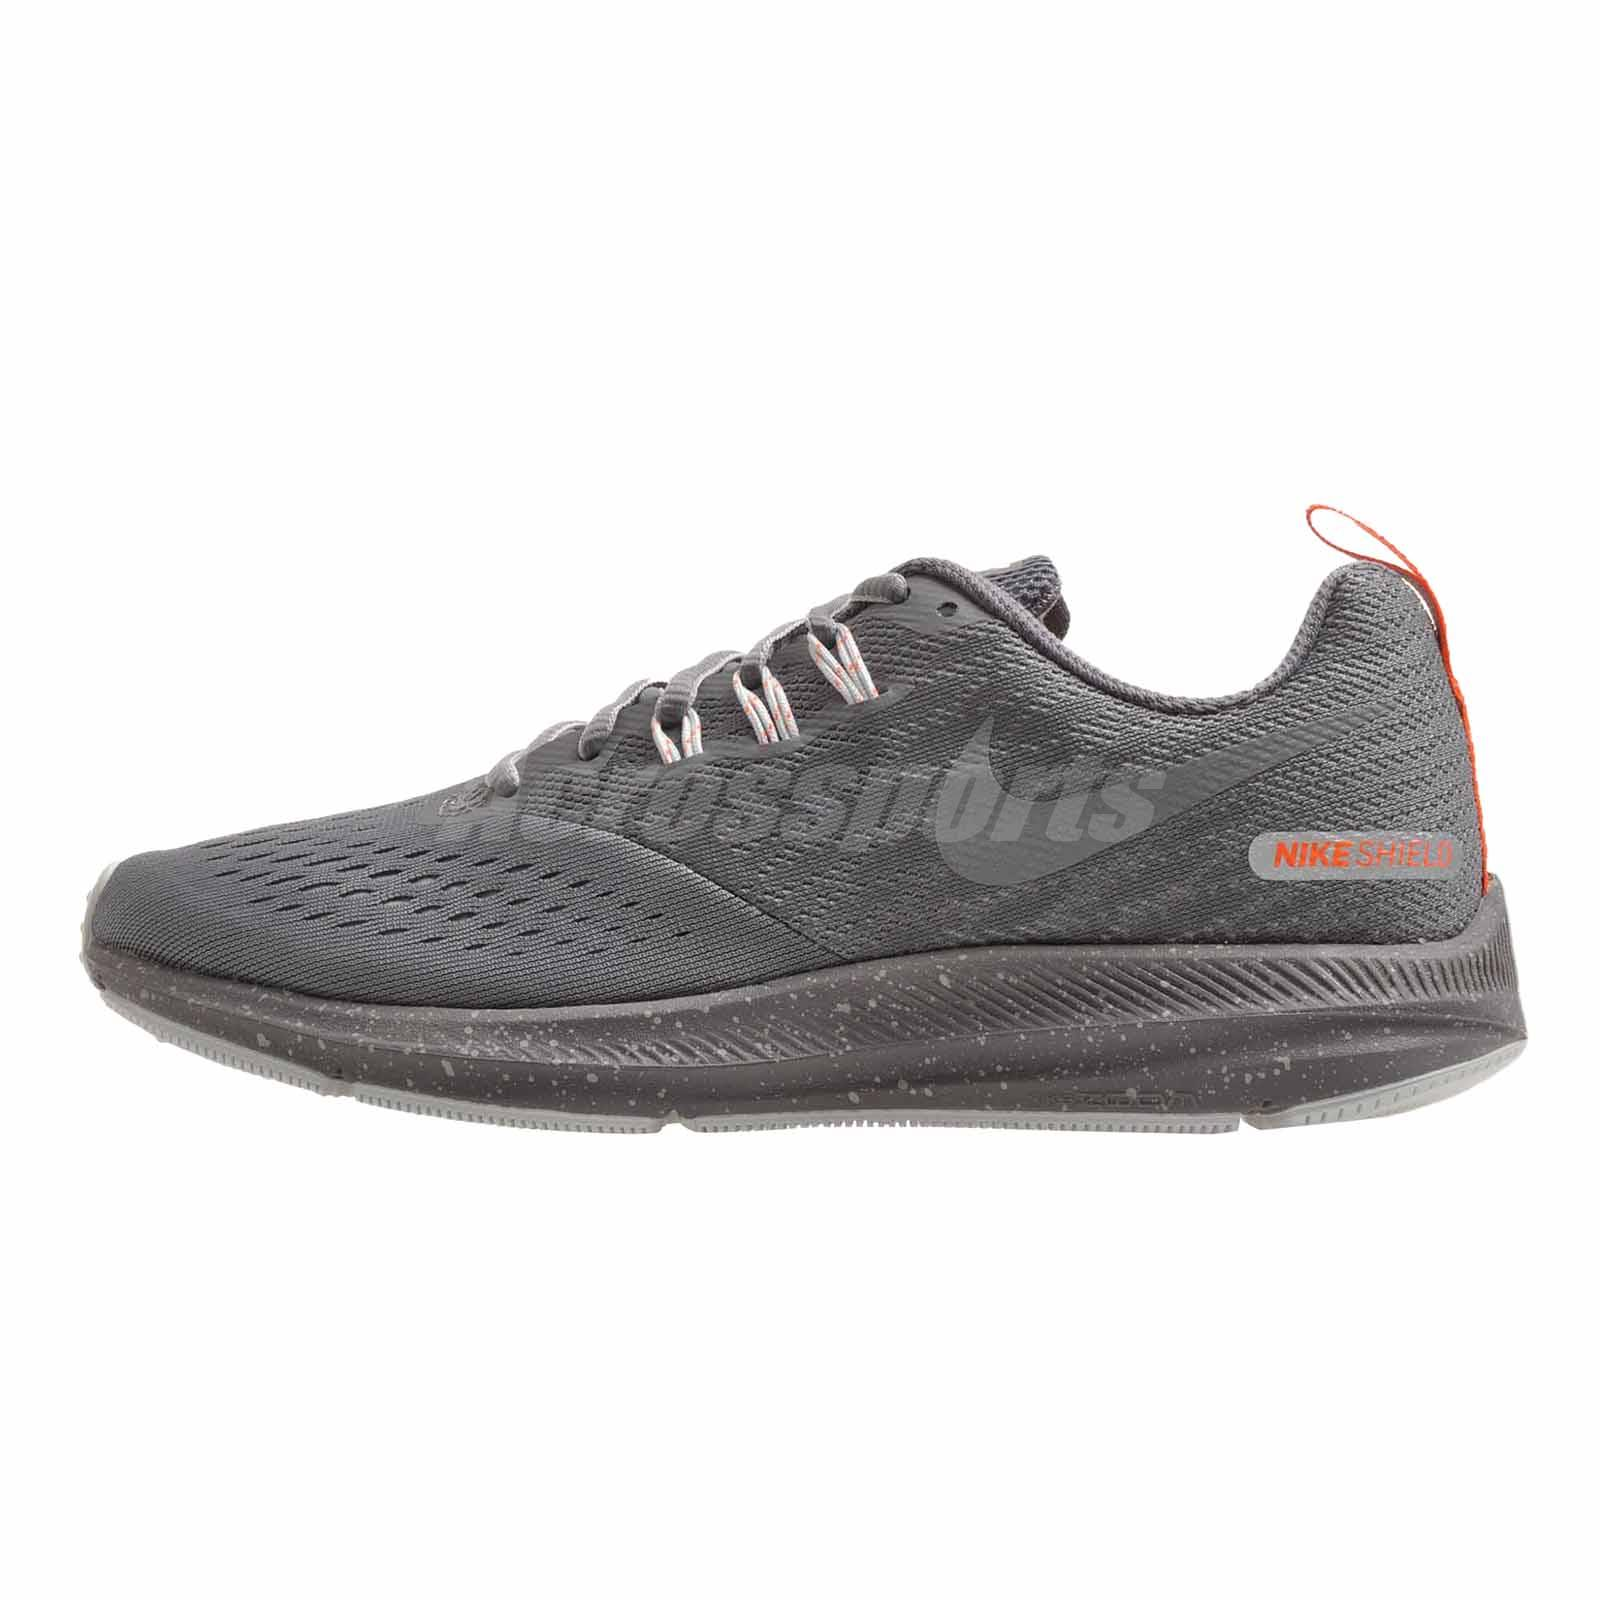 quality design 896f9 88481 Details about Nike Wmns Zoom Winflo 4 Shield Running Womens Shoes Cool Grey  Repel 921721-004